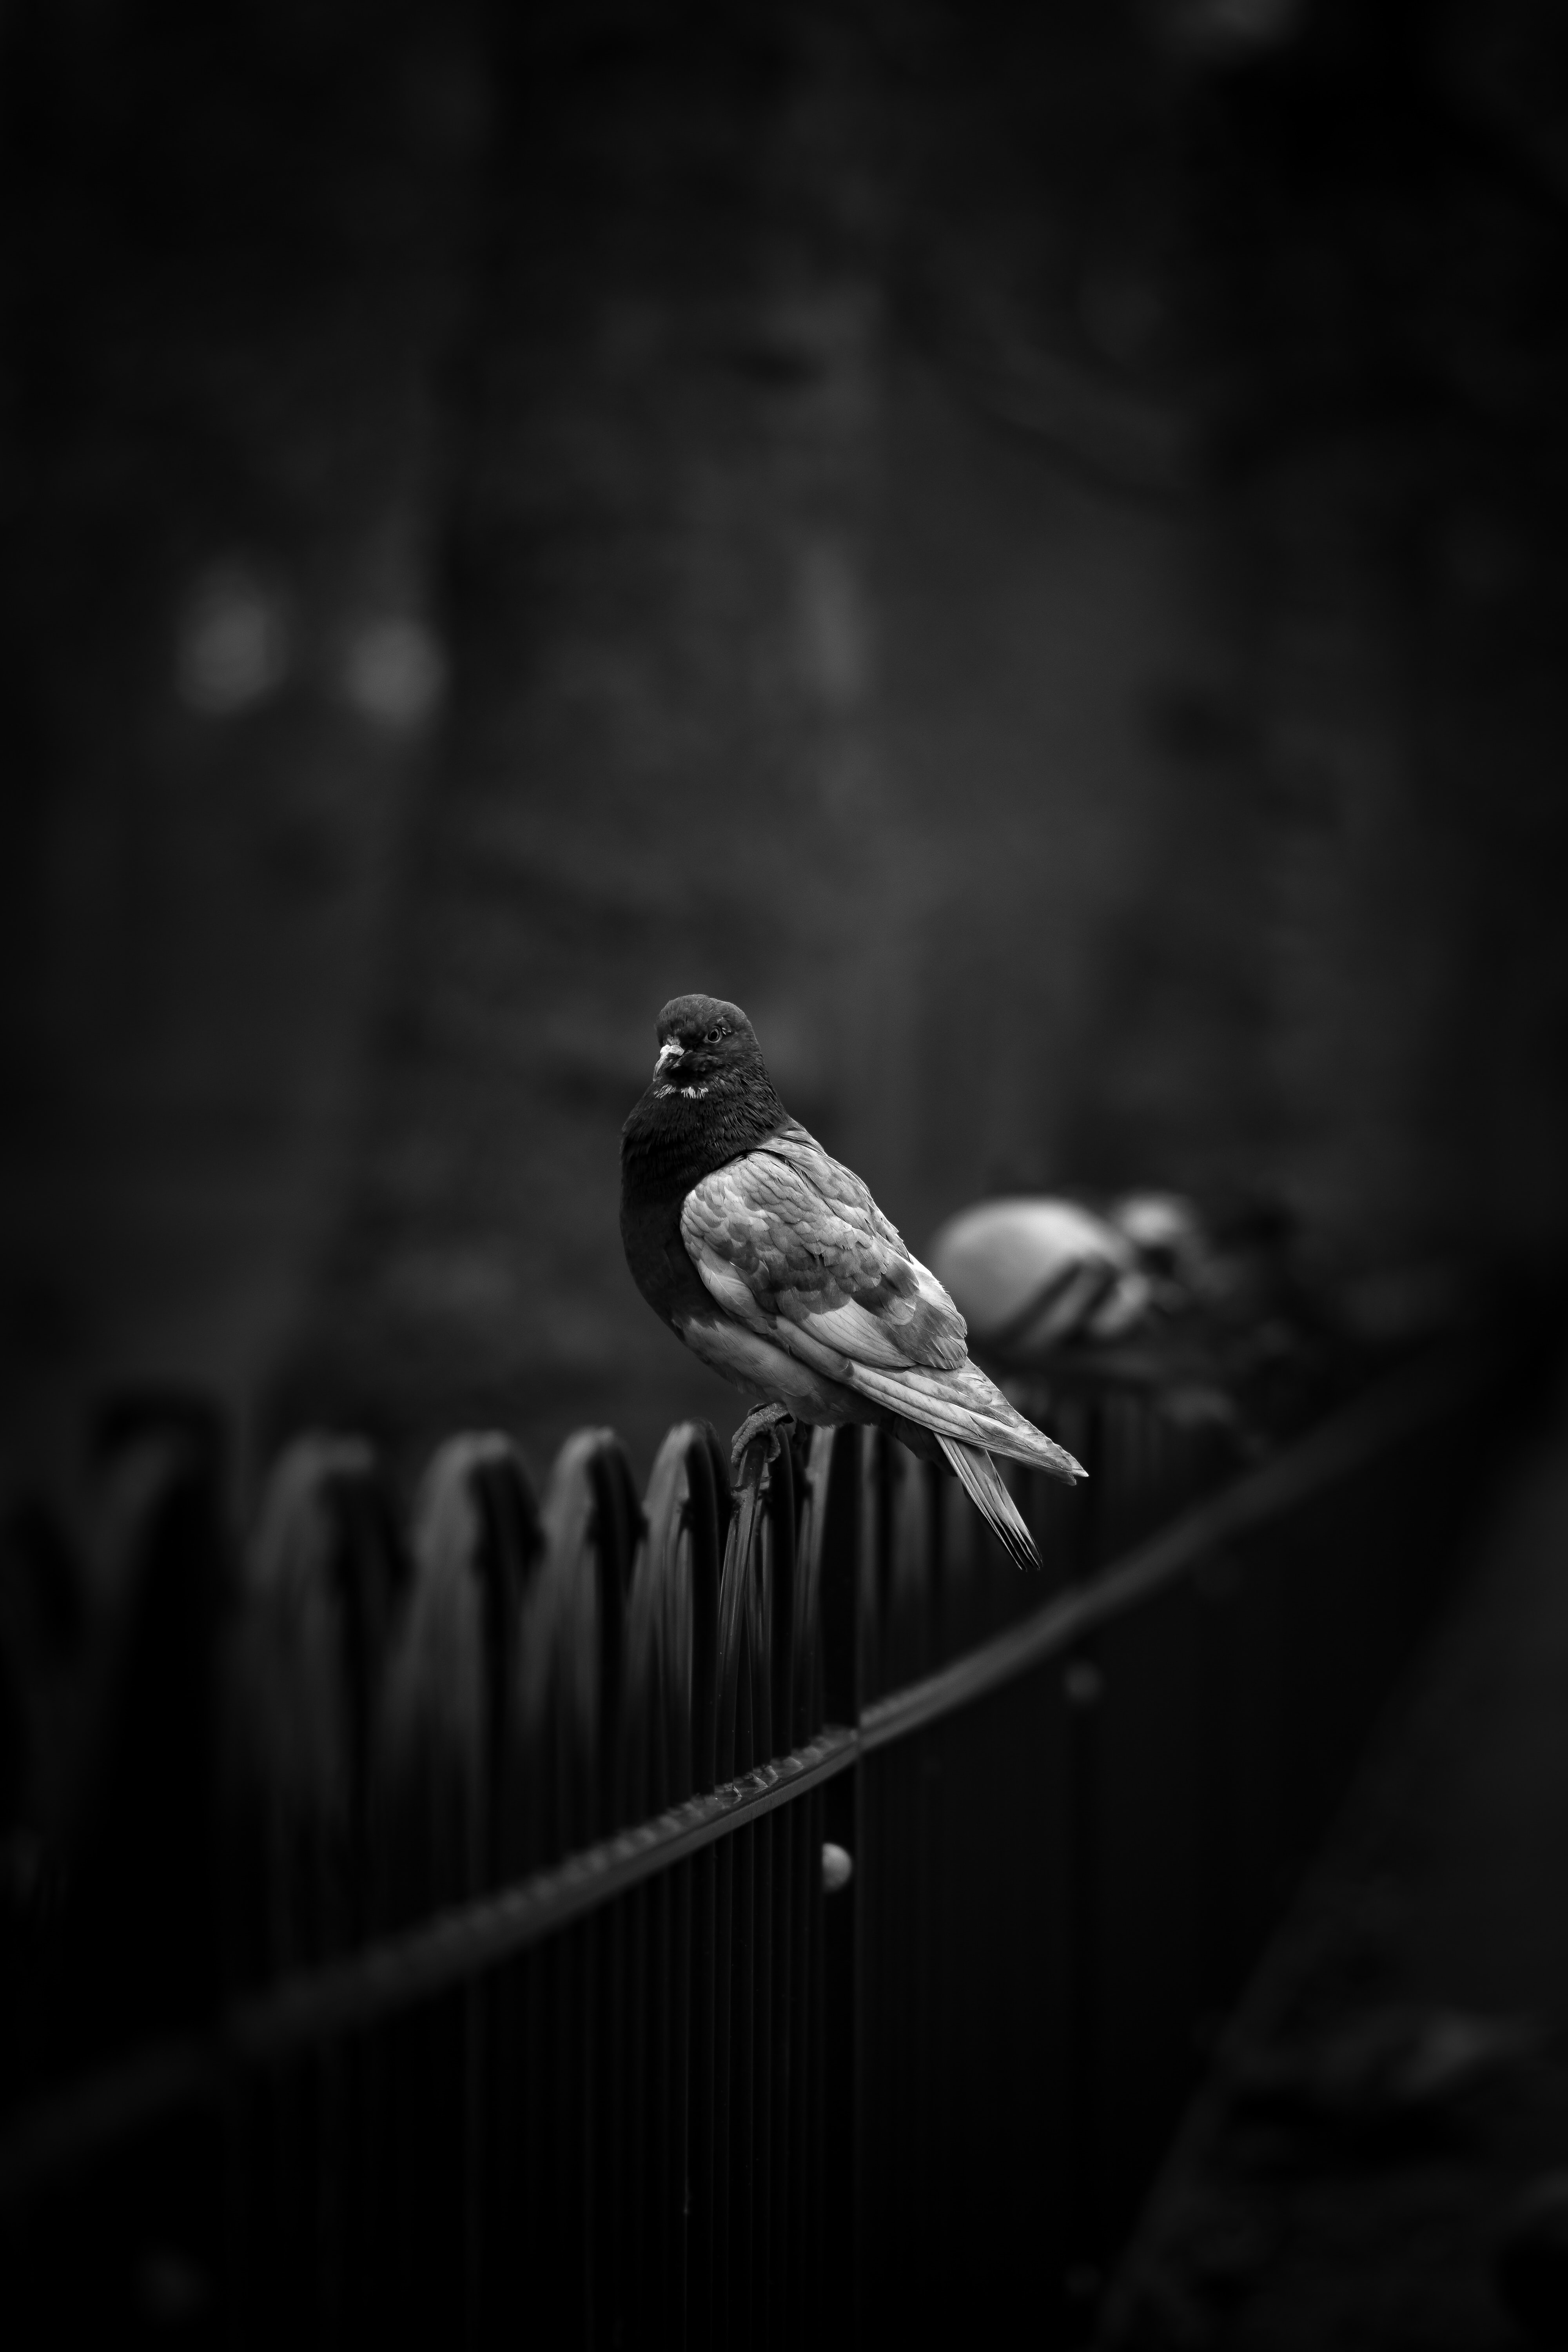 grayscale photo of pigeon on black fence